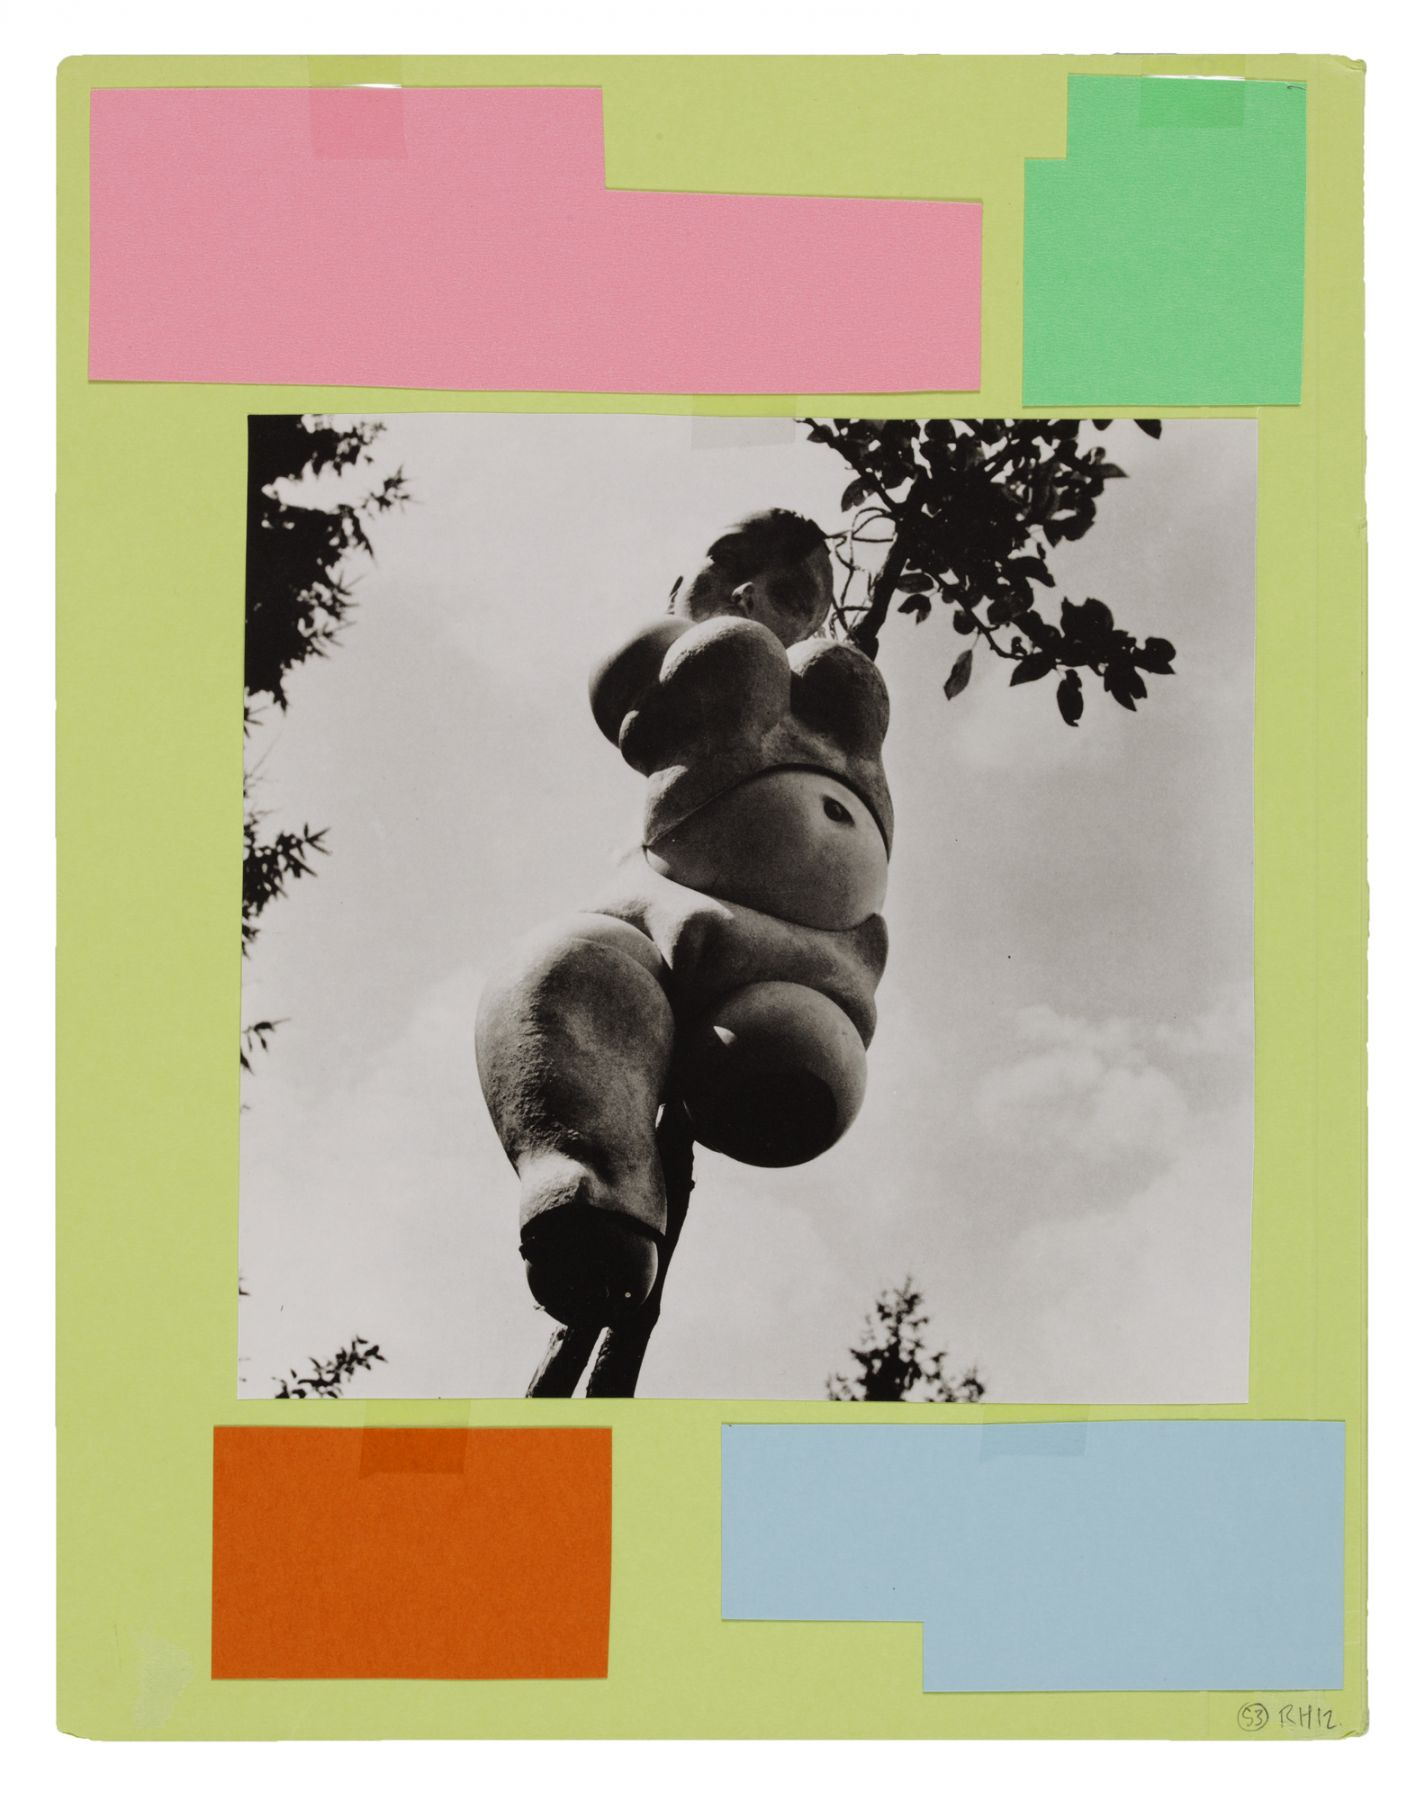 Ankoku 53 (Disbellmered), 2012, Collage